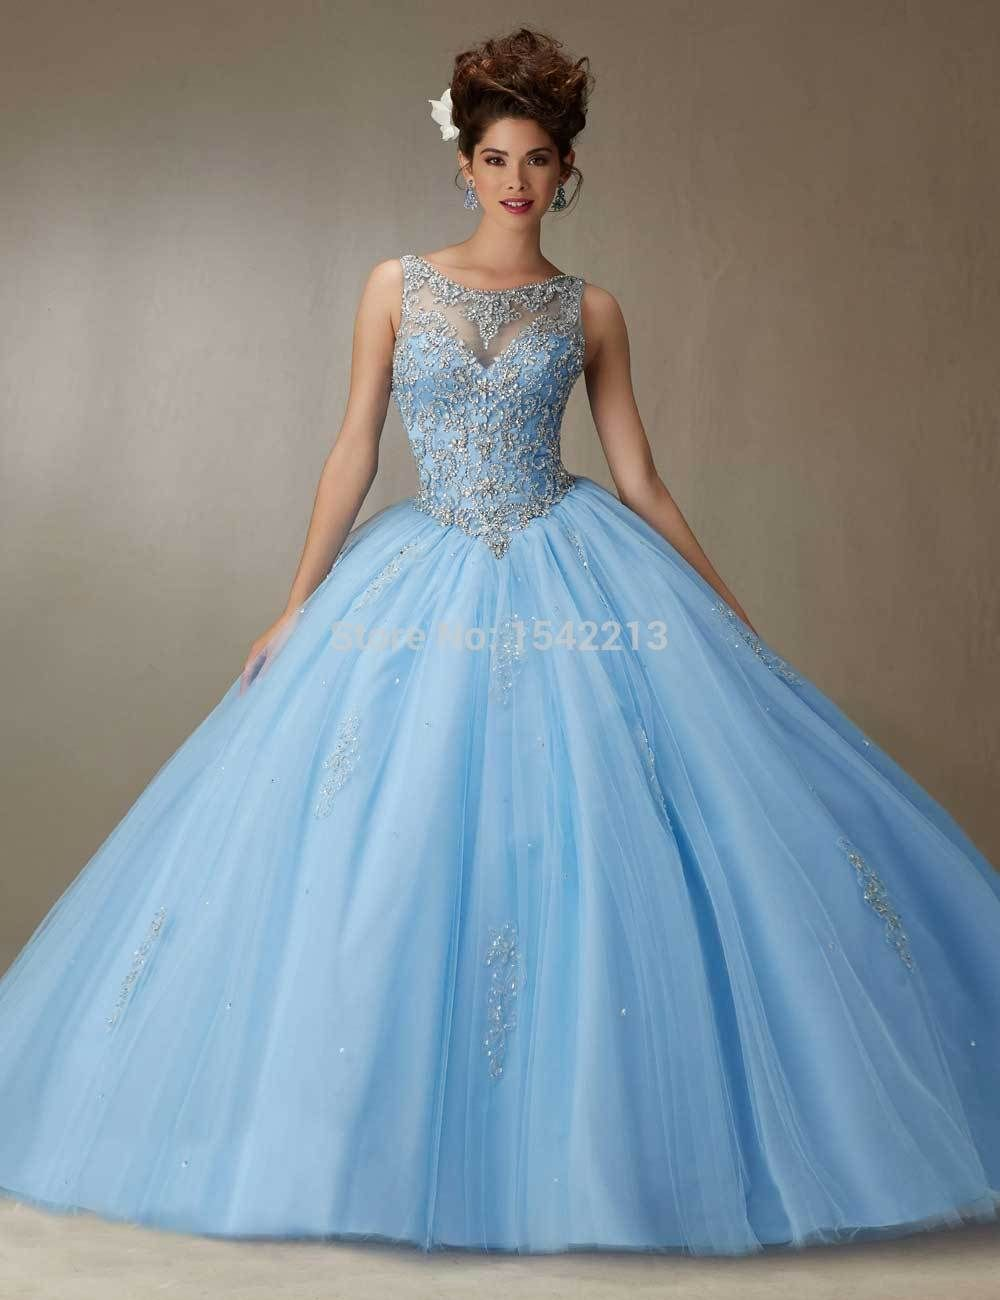 7c6b1e586d Light Sky Blue Pink Ball Gown Quinceanera Dress Heavy Beaded Sexy Backless  Style Girls Sweet 16 Prom Gowns-in Quinceanera Dresses from Weddings    Events on ...